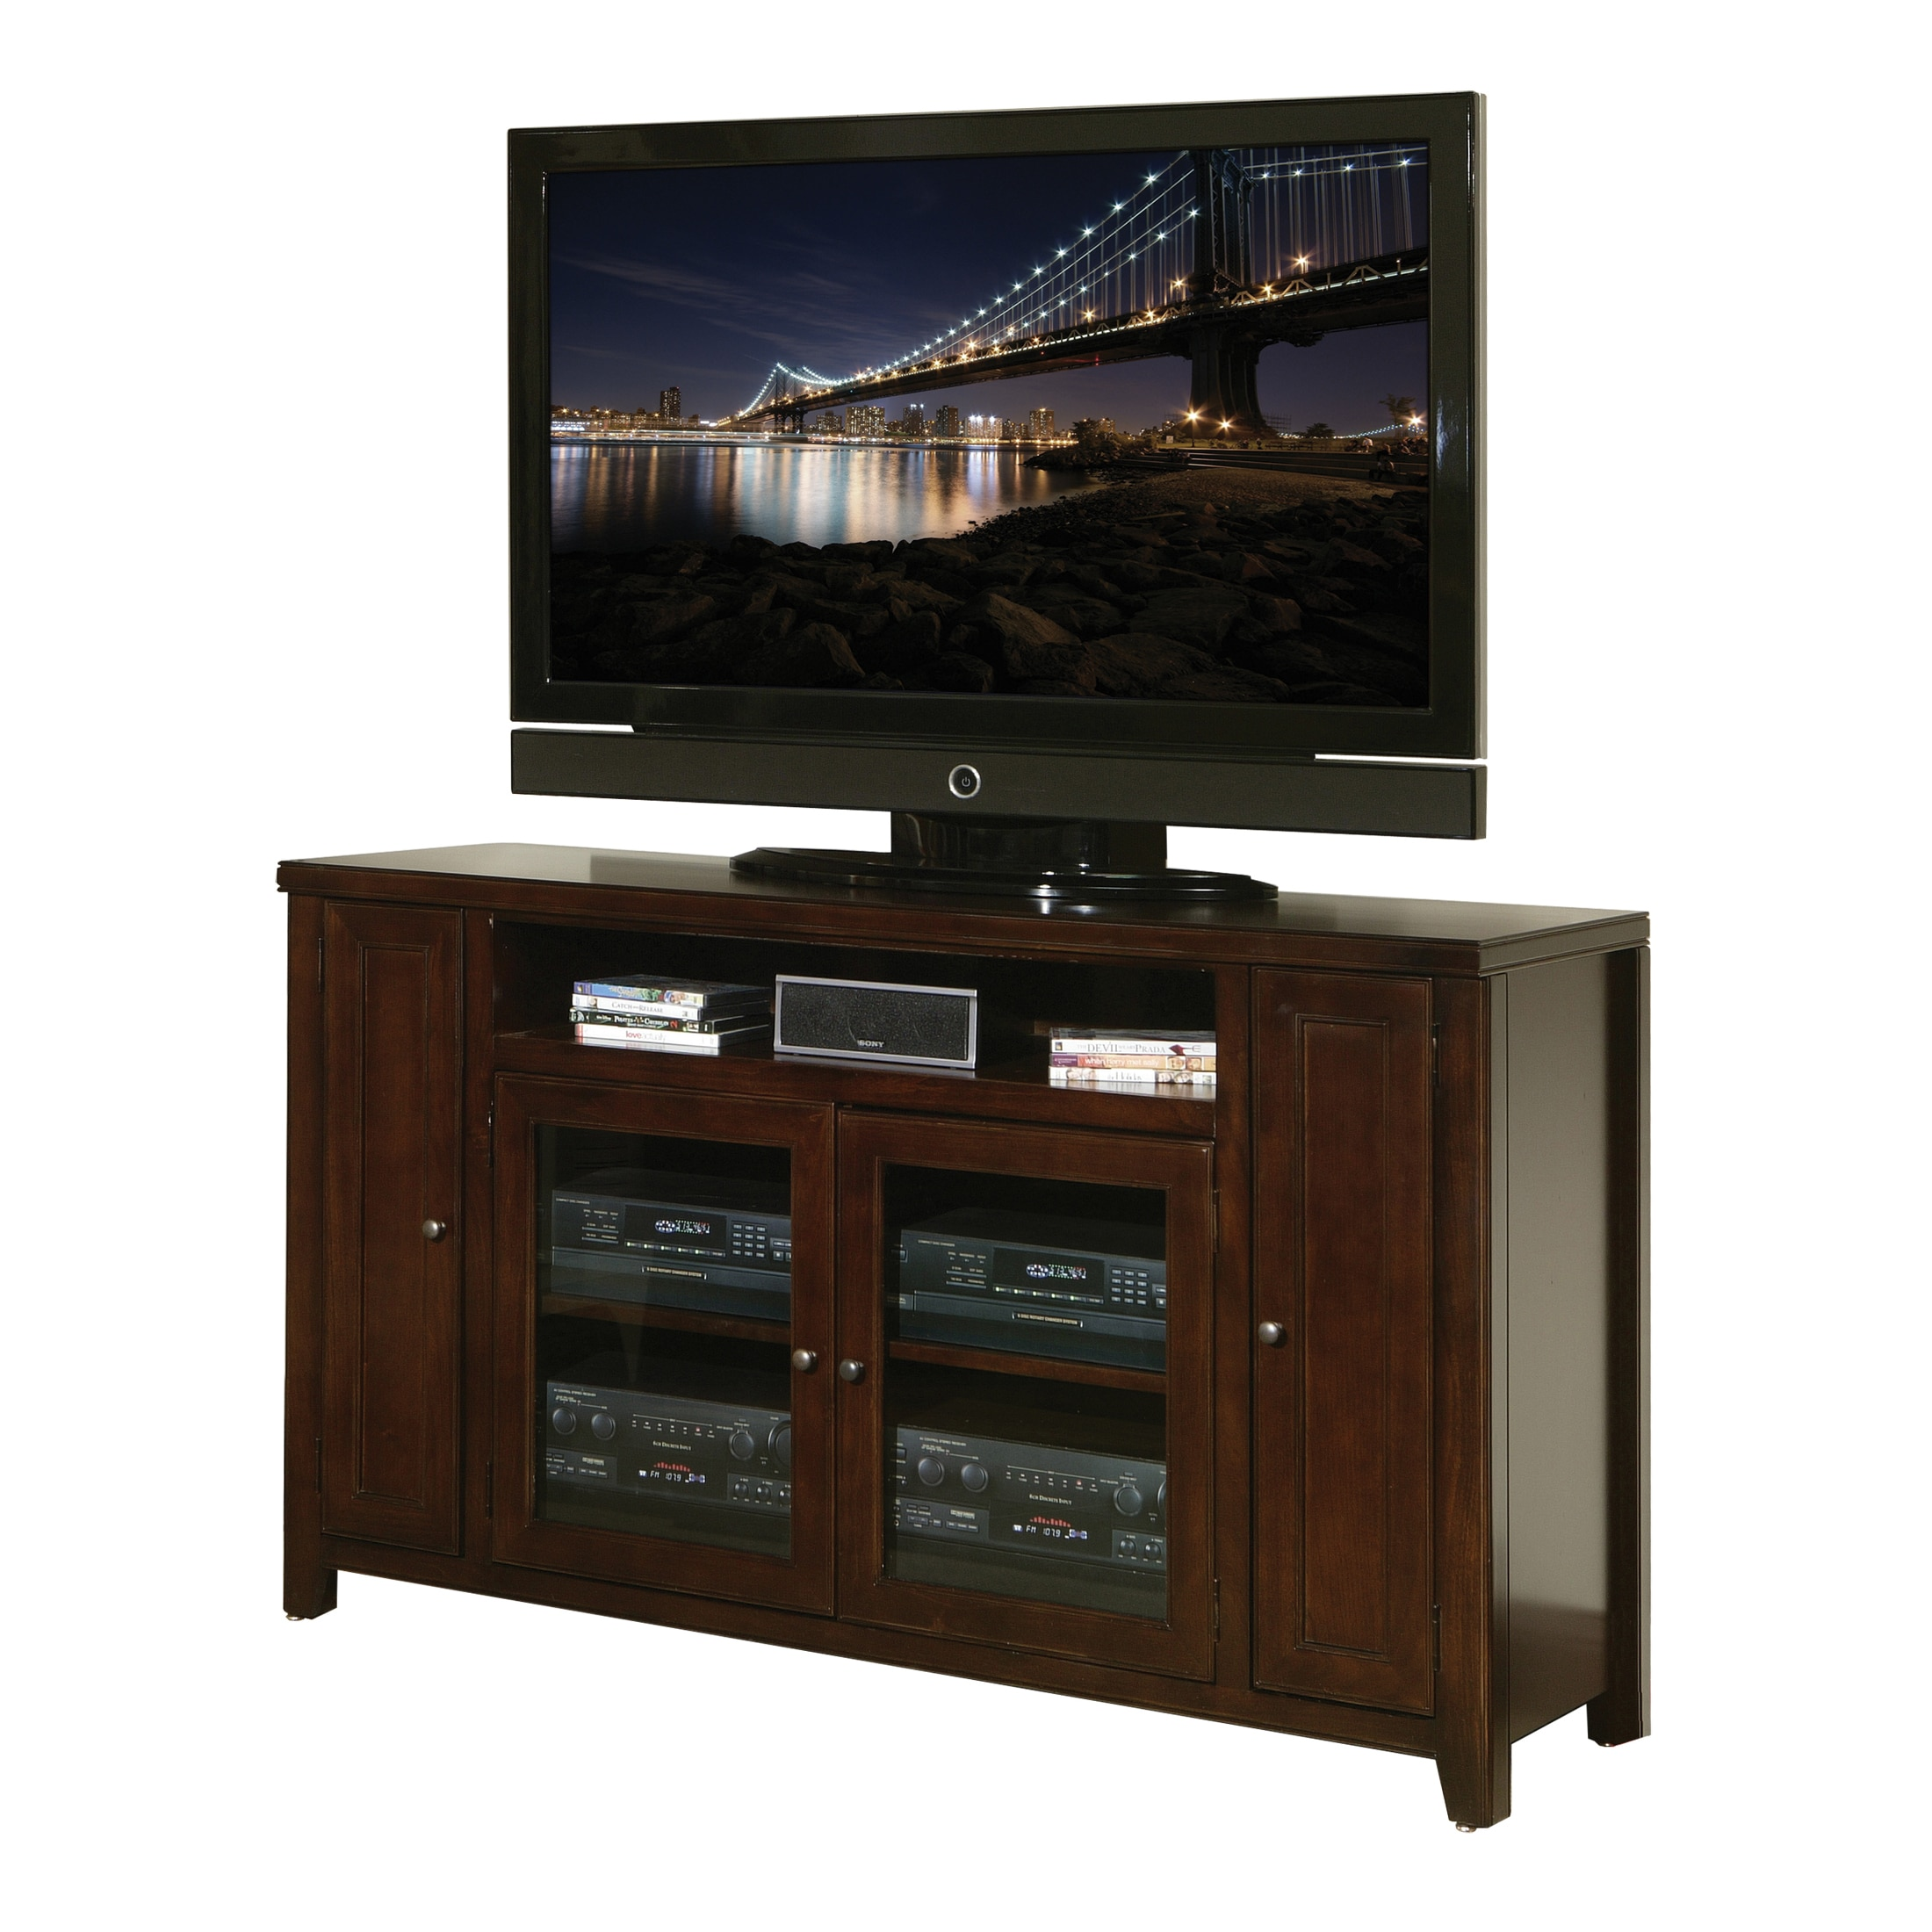 Shop Tansley Landing Cherry 36 Tall Tv Stand Free Shipping Today